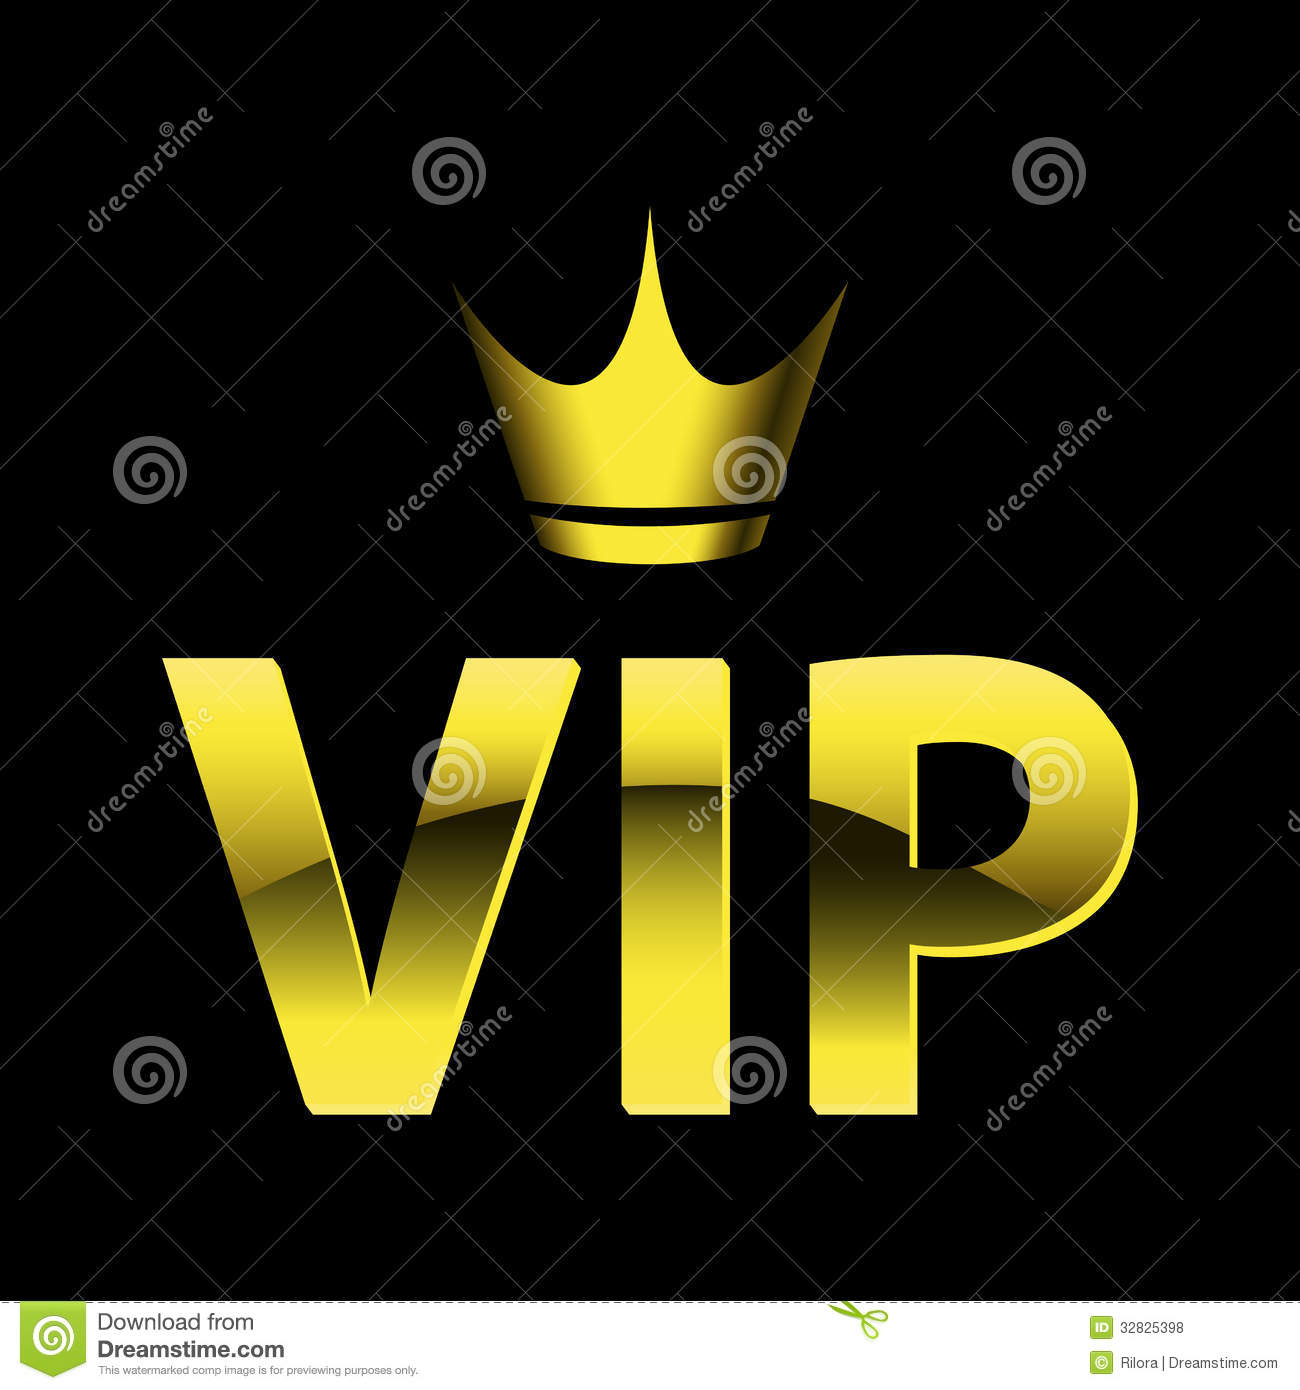 Vip Design Stock Vector Illustration Of Modern Crown 32825398